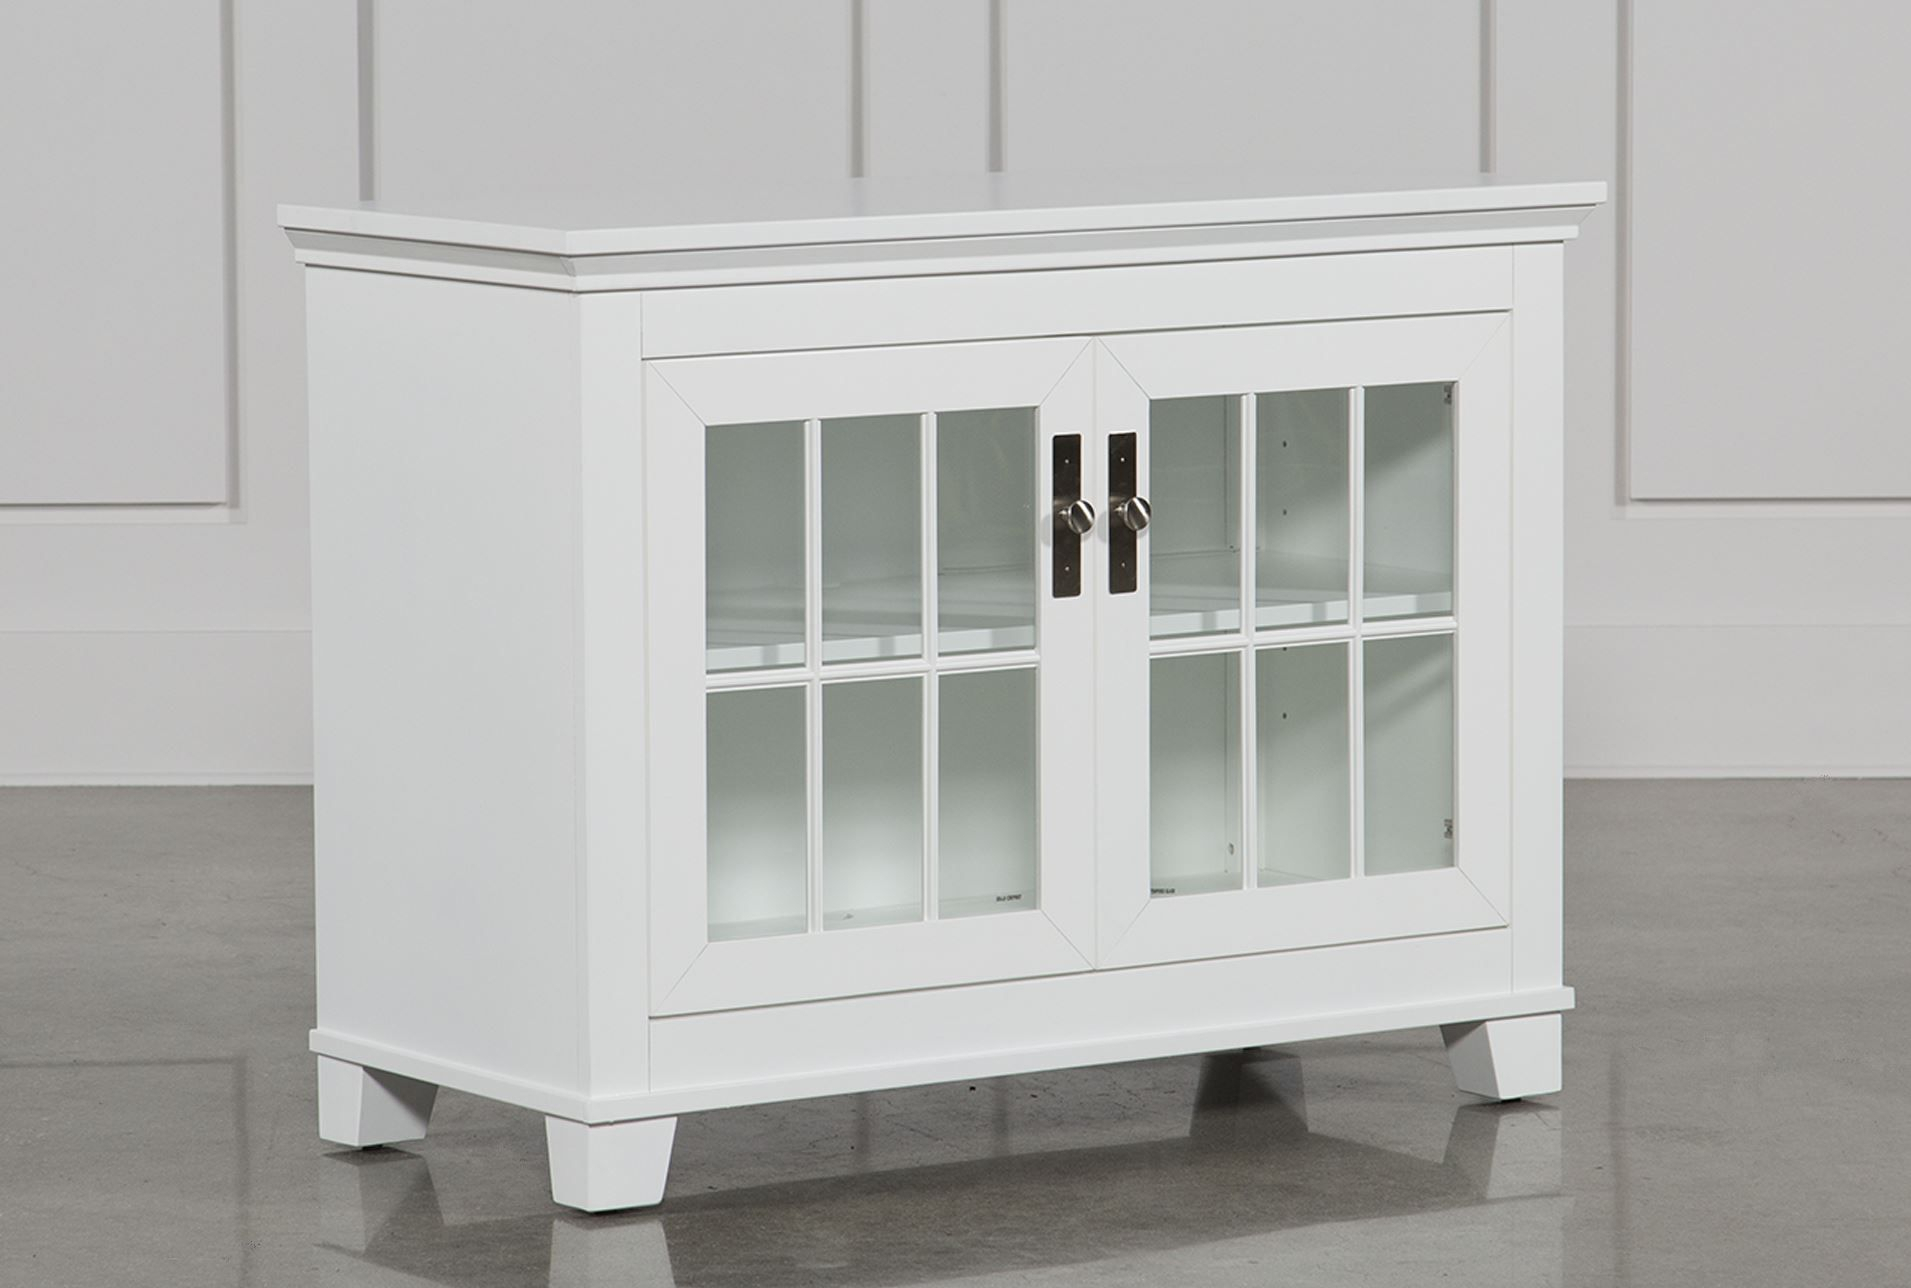 295 Living Hamden White 43 Inch Tv Console | Playroom | Pinterest With Regard To Abbott Driftwood 60 Inch Tv Stands (Gallery 12 of 30)